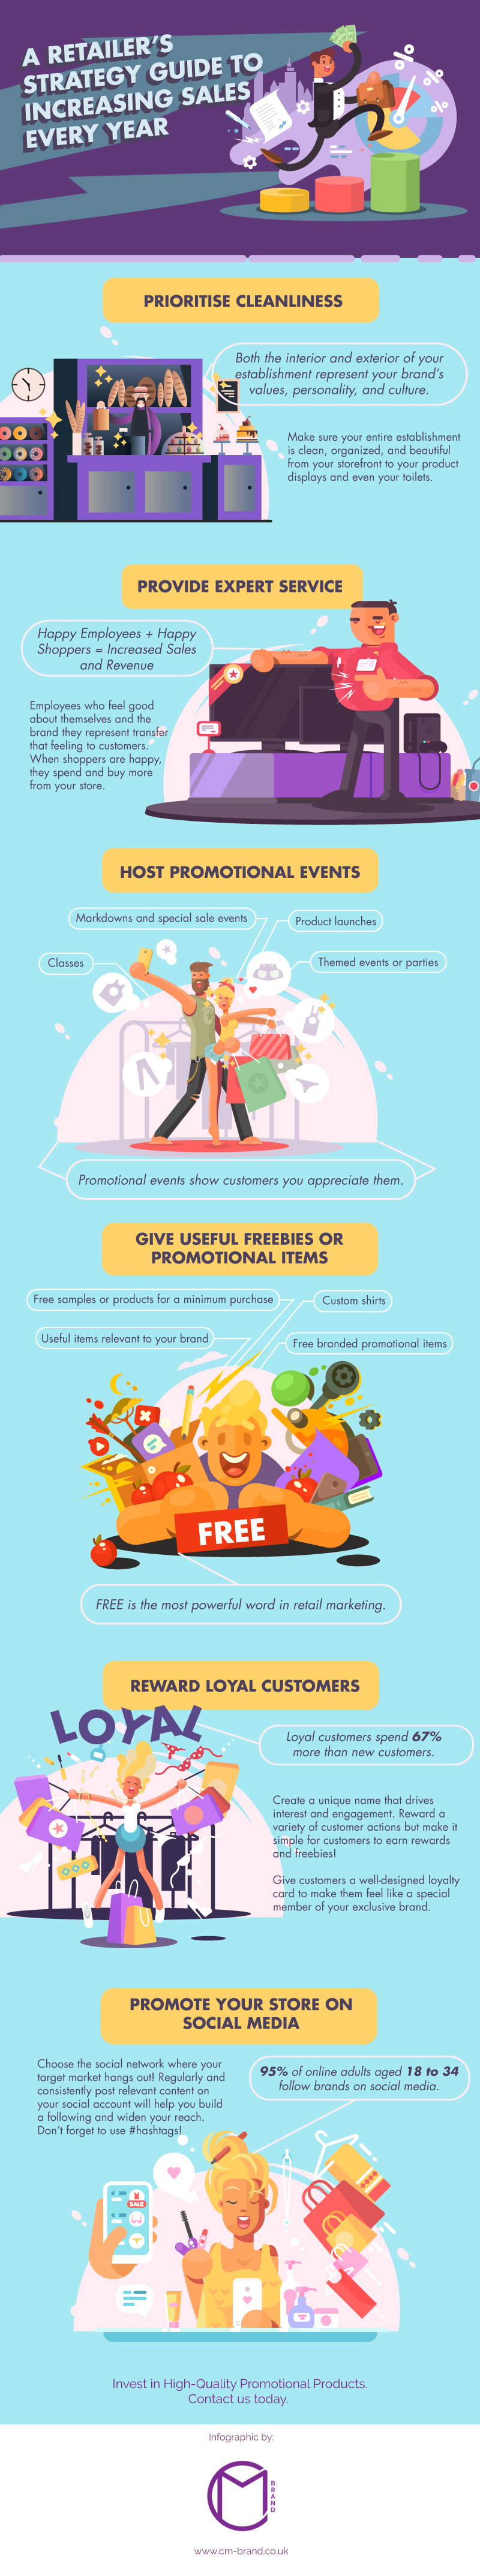 A Retailers Strategy Guide to Increasing Sales Every Year-infographic